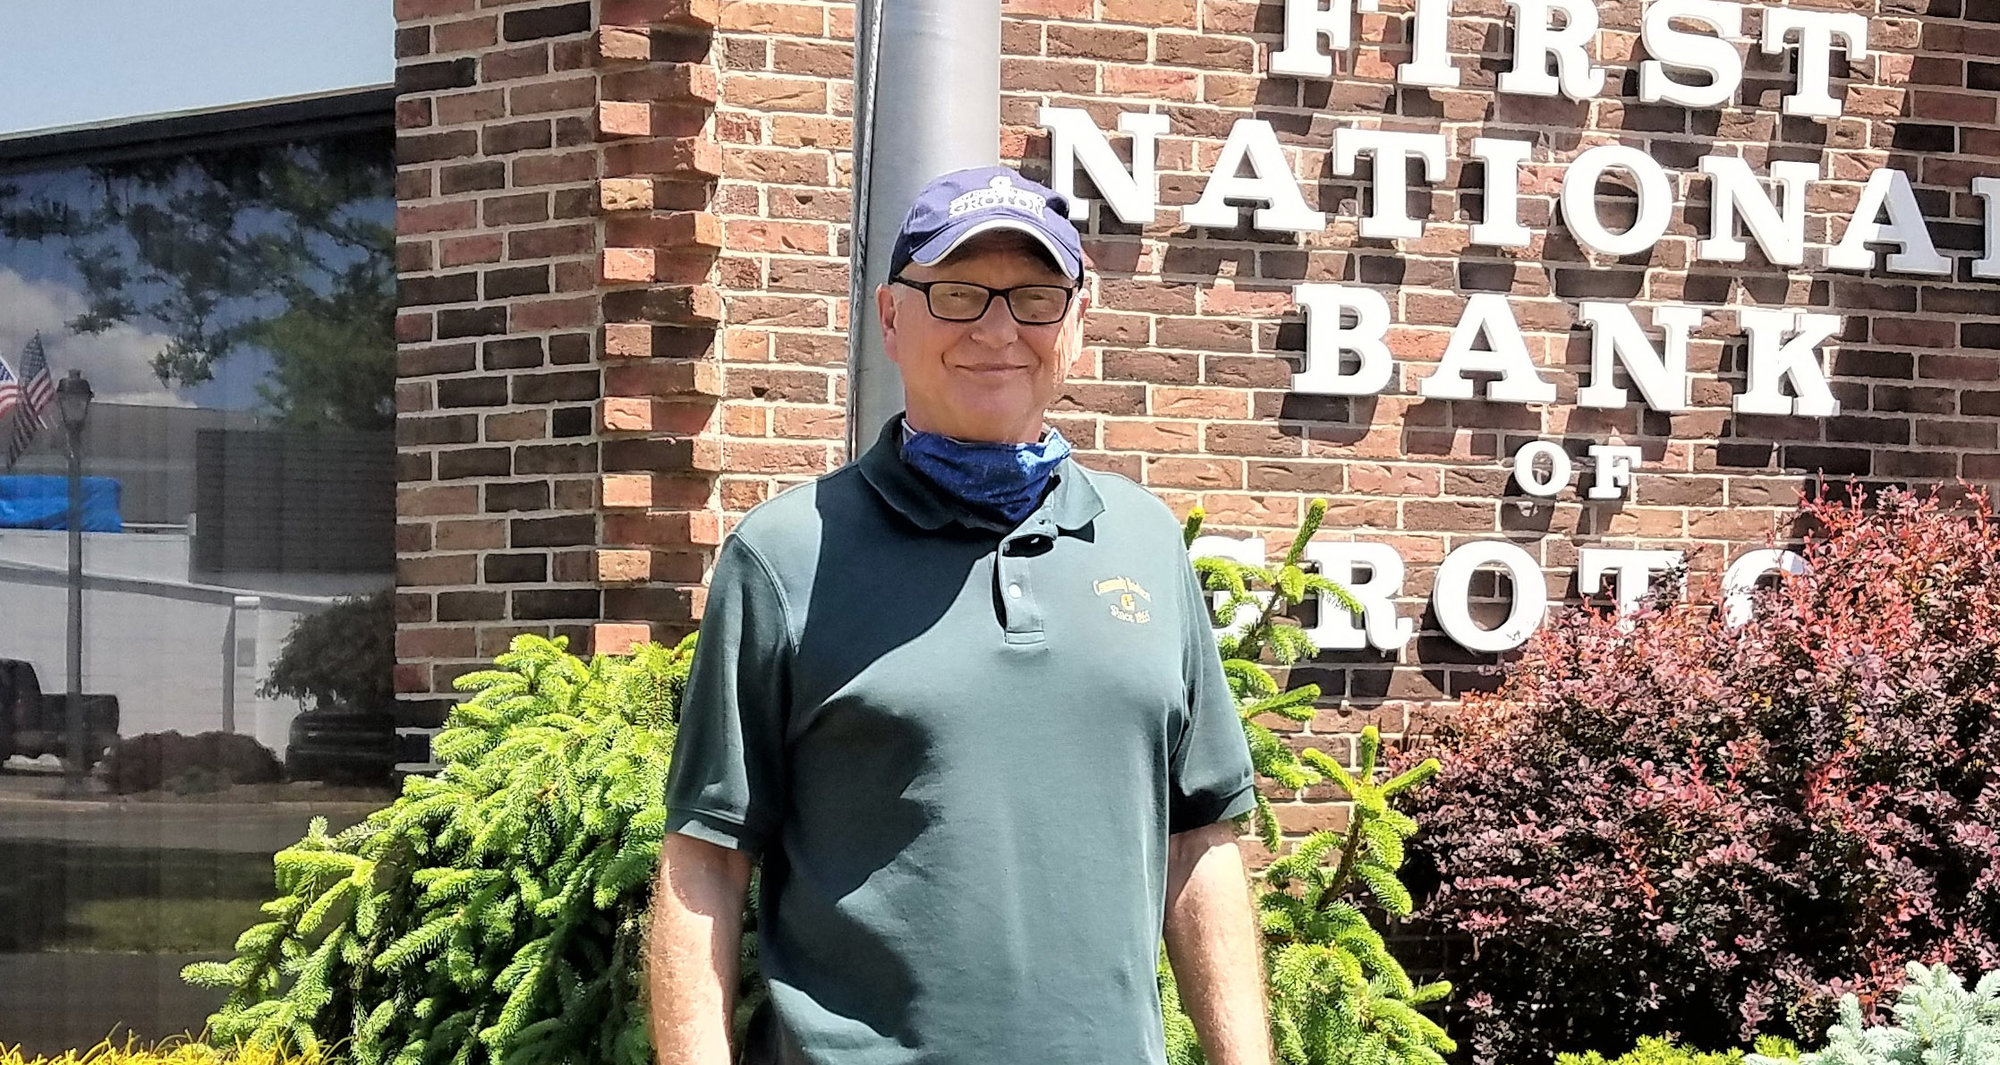 Alan Christopher, senior vice president of the First National Bank of Groton, stands in front of the bank he has worked at for the past 50 years.